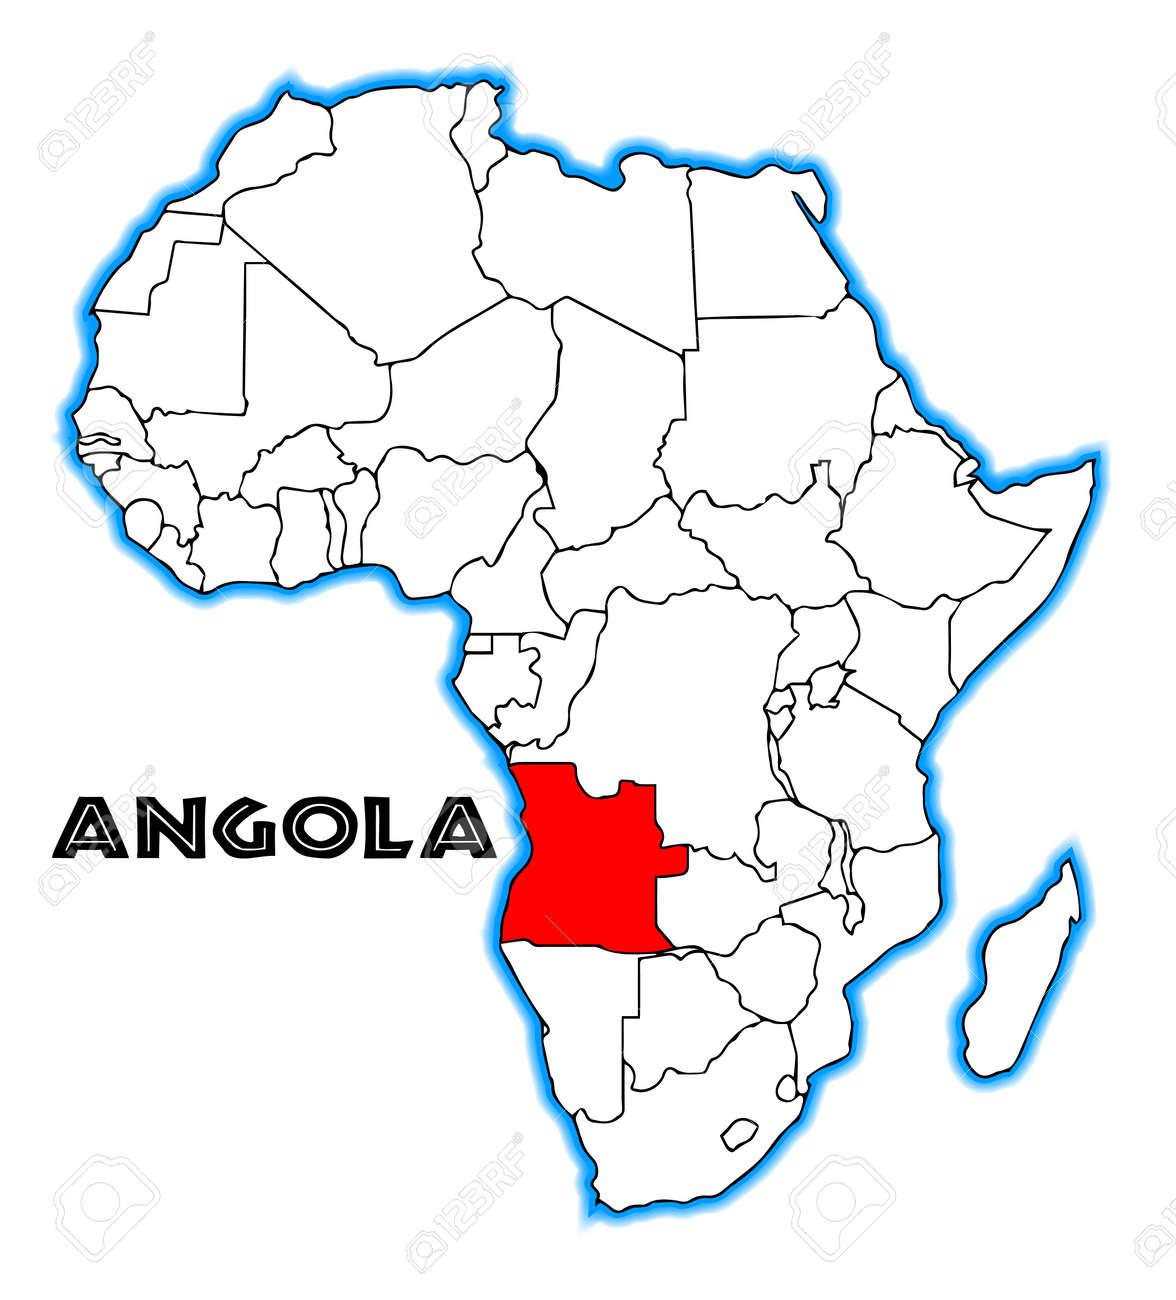 Carte Afrique Angola.Angola Outline Inset Into A Map Of Africa Over A White Background